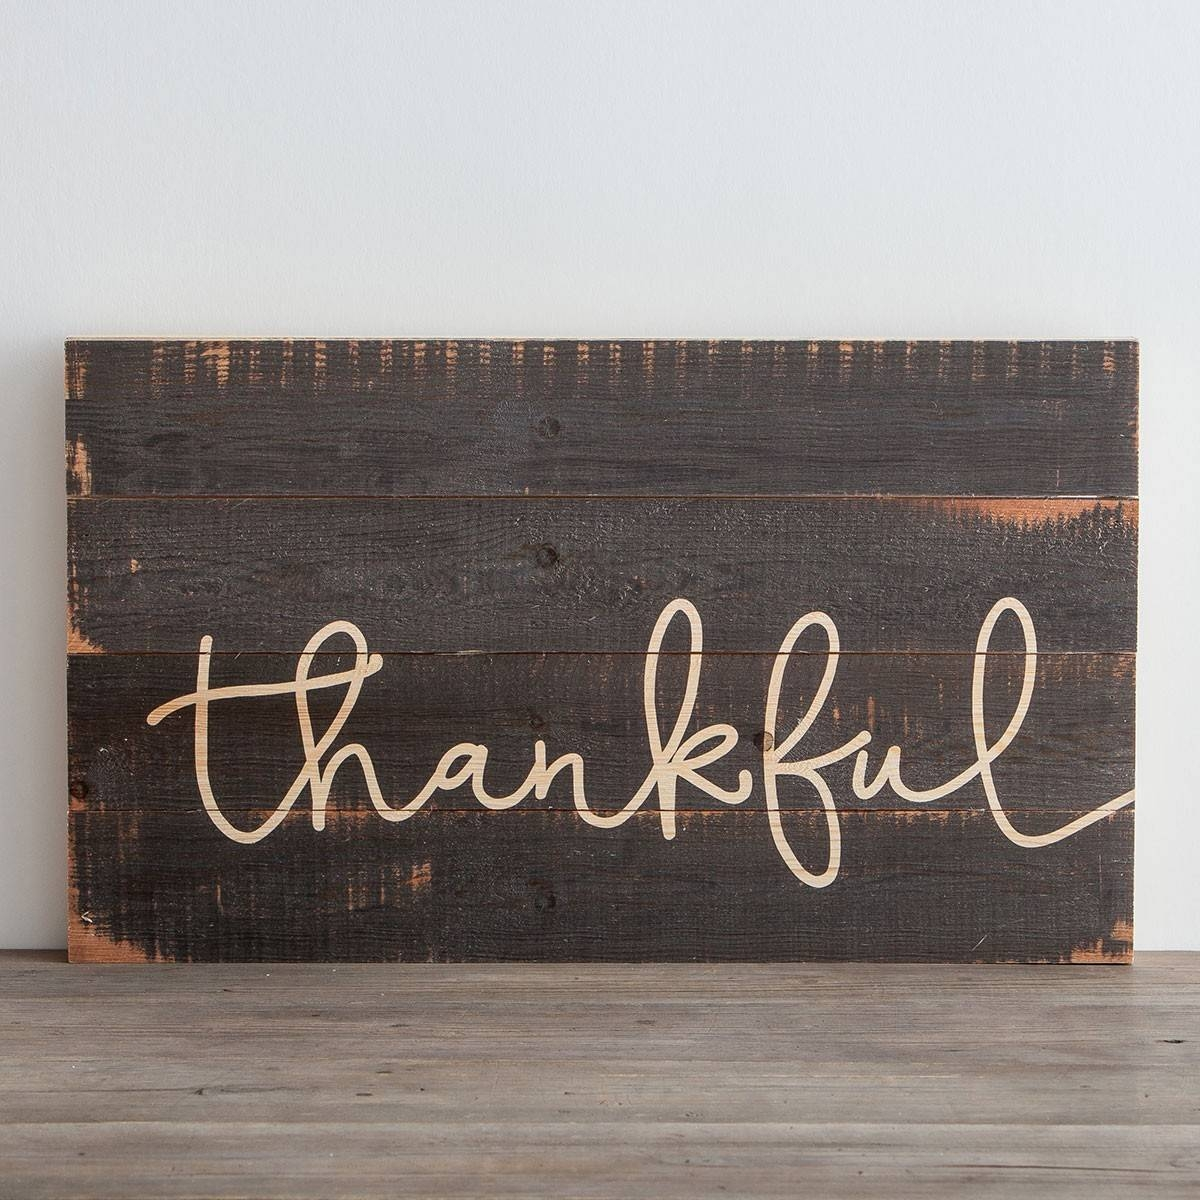 Thankful – Wooden Wall Art | Dayspring With Regard To Most Current Natural Wood Wall Art (View 14 of 20)